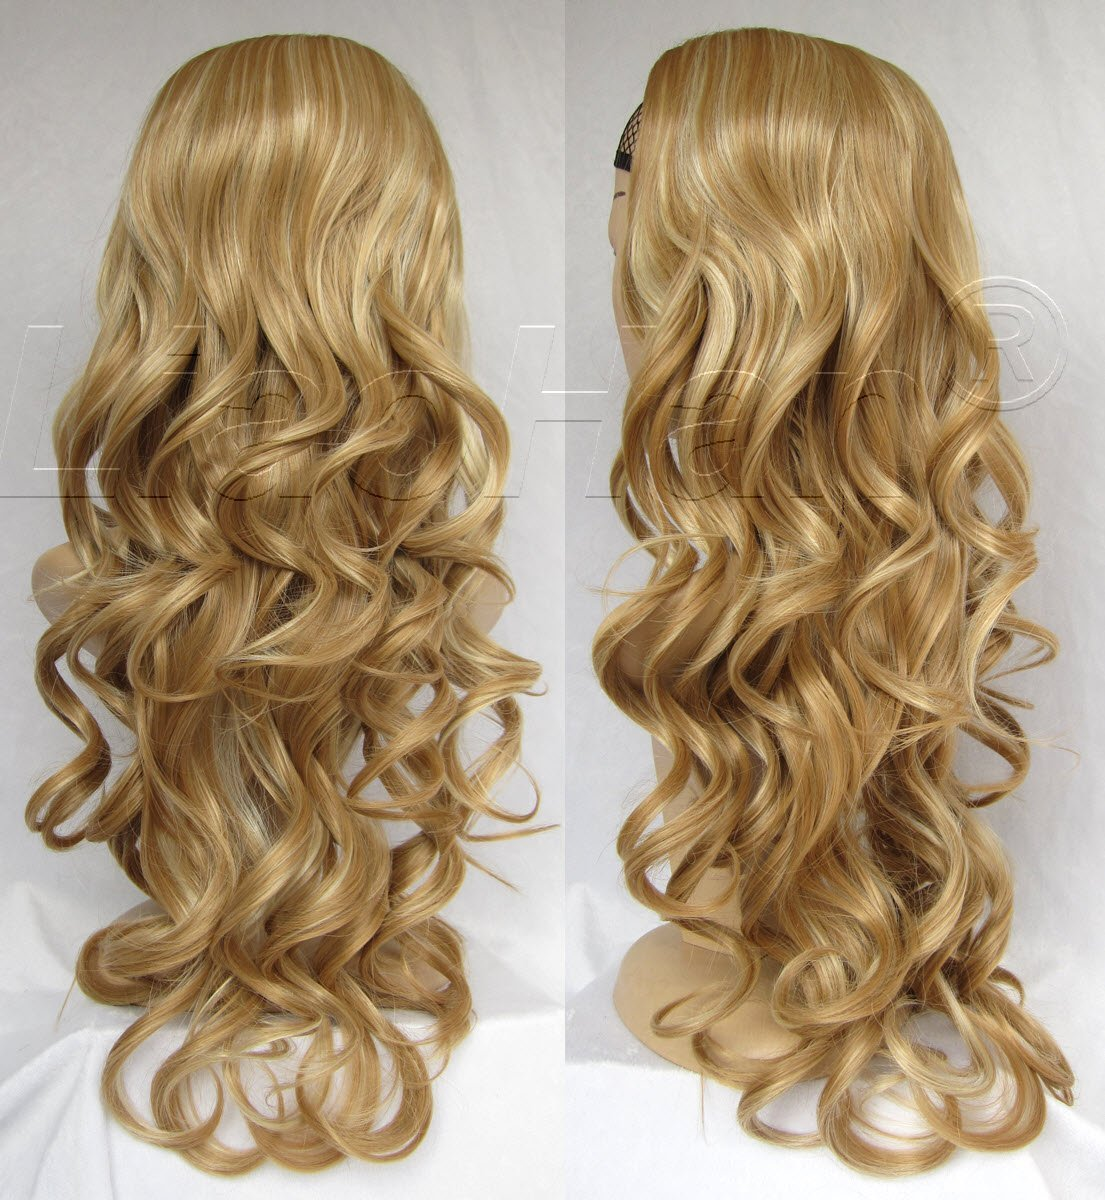 Buy Liaohan Fashion Highlights Brown Blonde Wig Fall 24 Long Curly